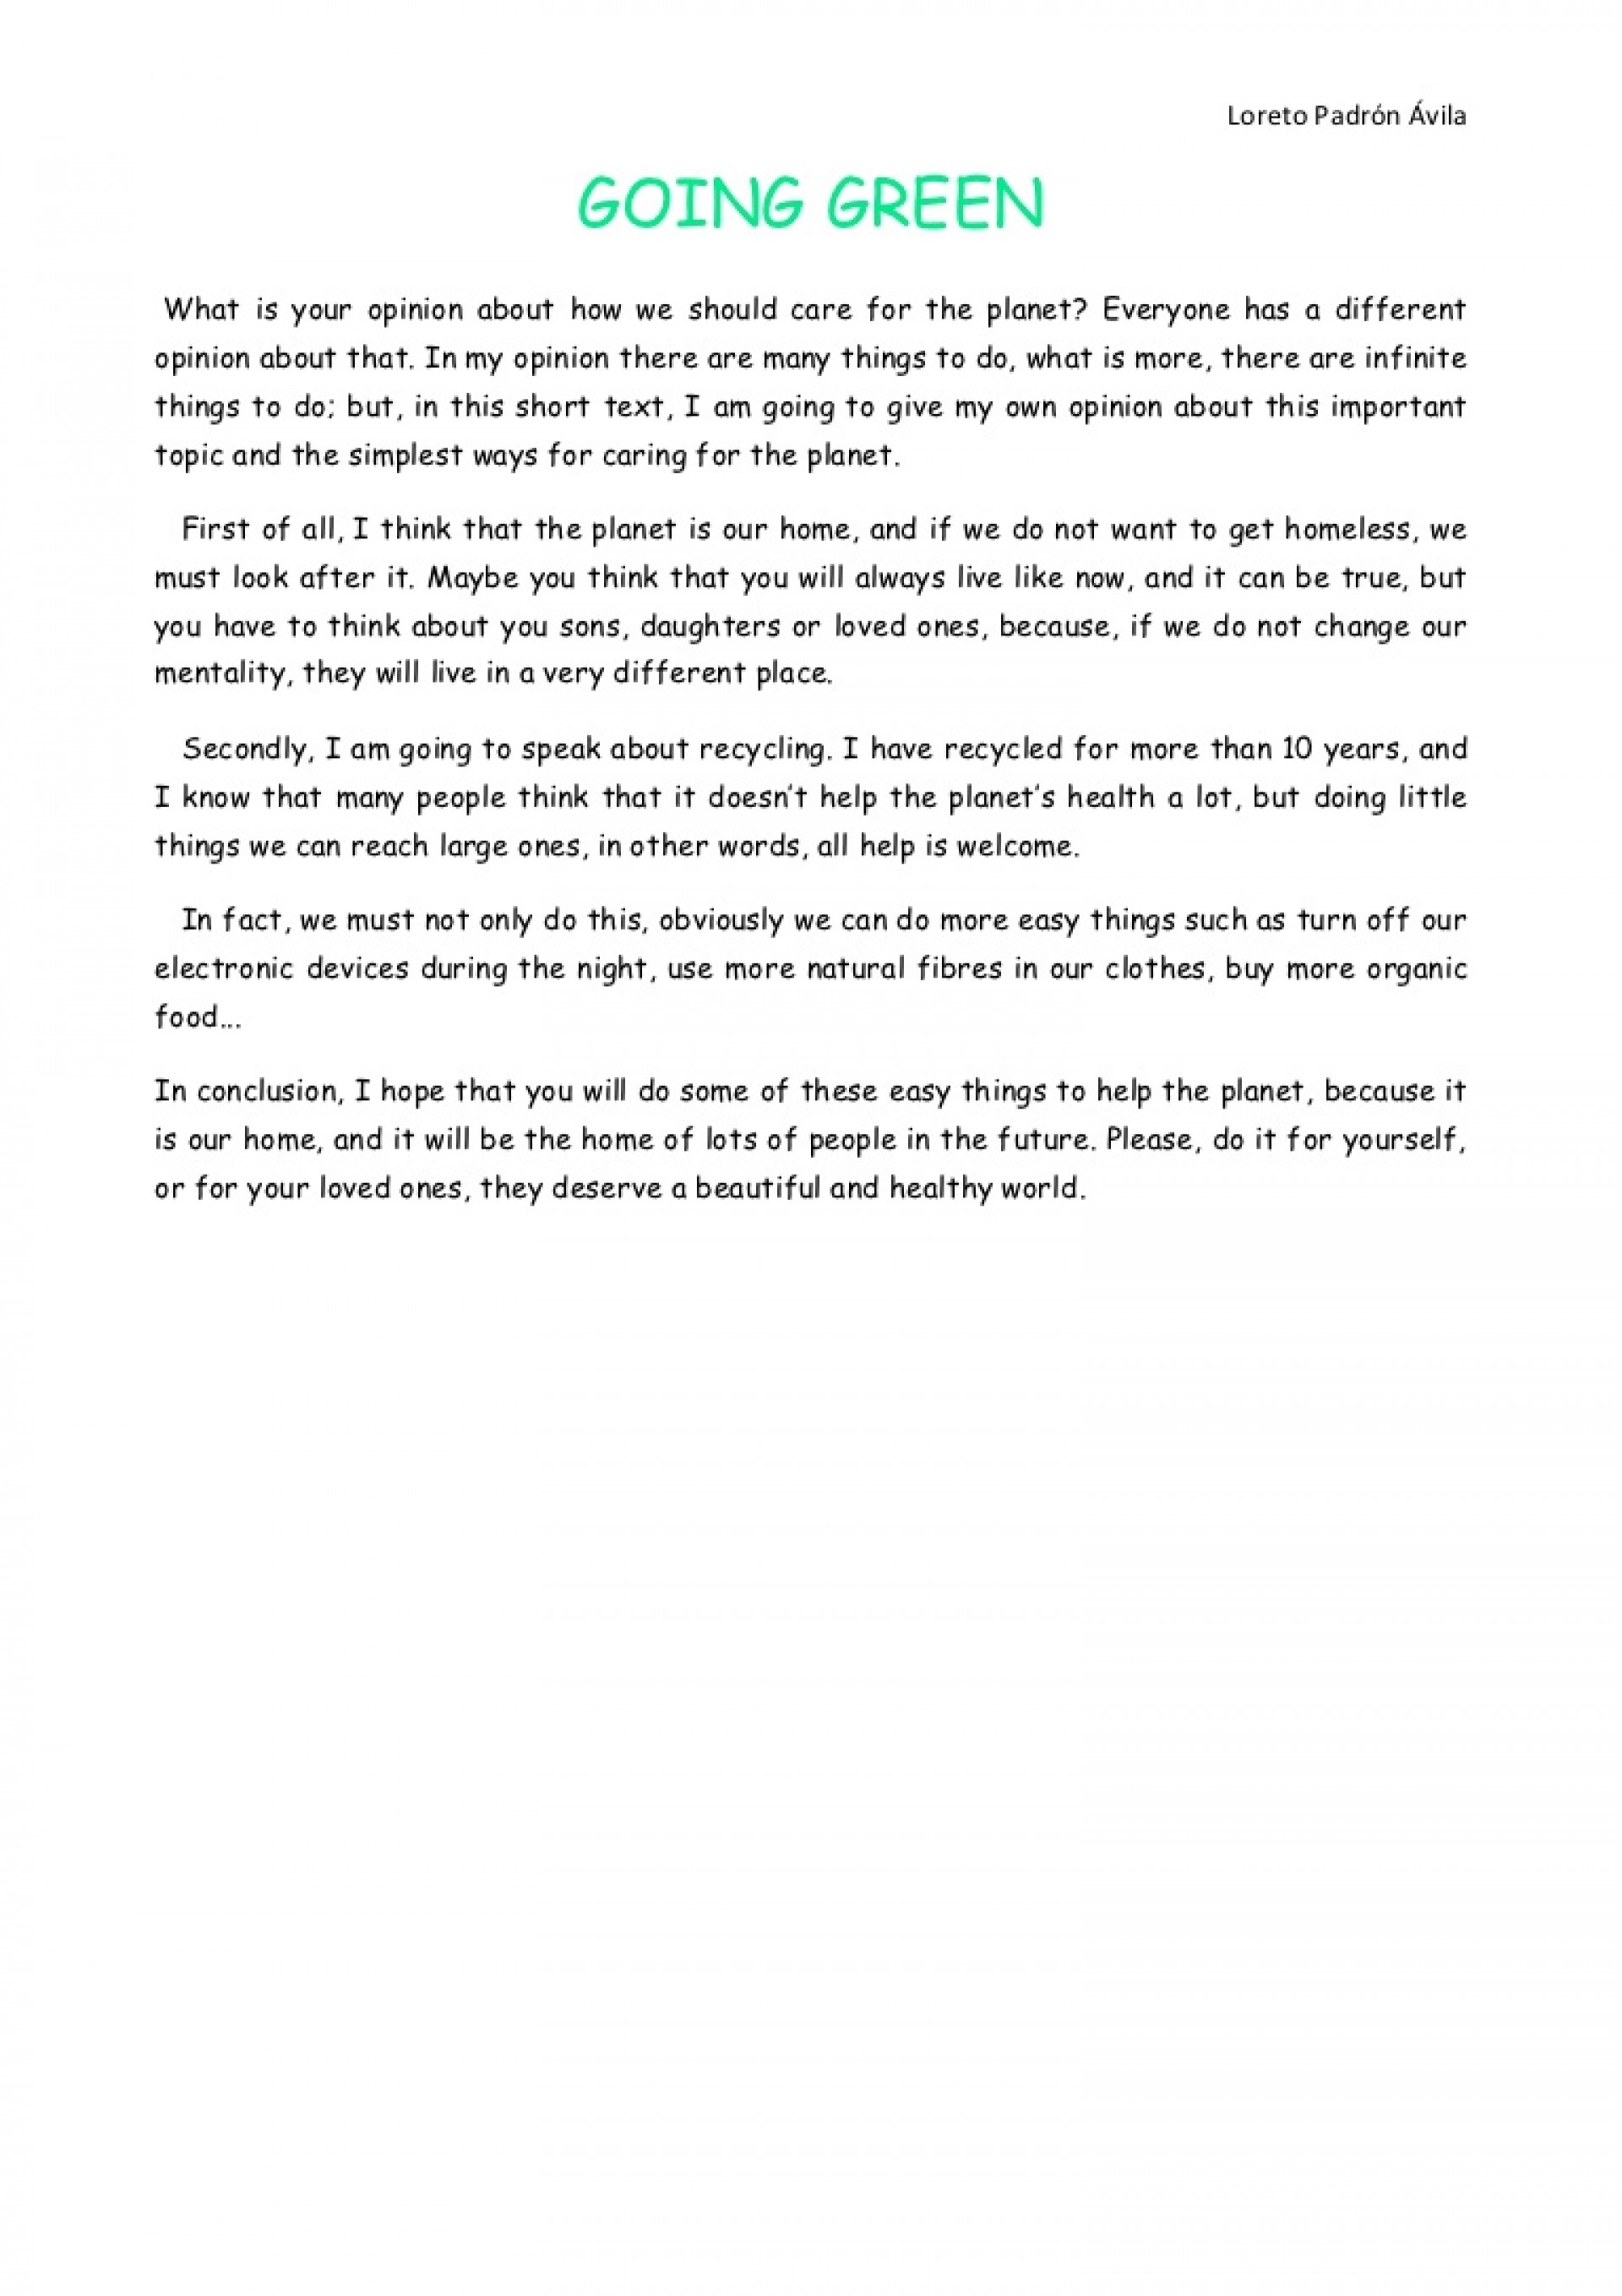 007 Goinggreenloreto Phpapp01 Thumbnail Where Do You See Yourself In Years Essay Sensational 10 U Example 1920